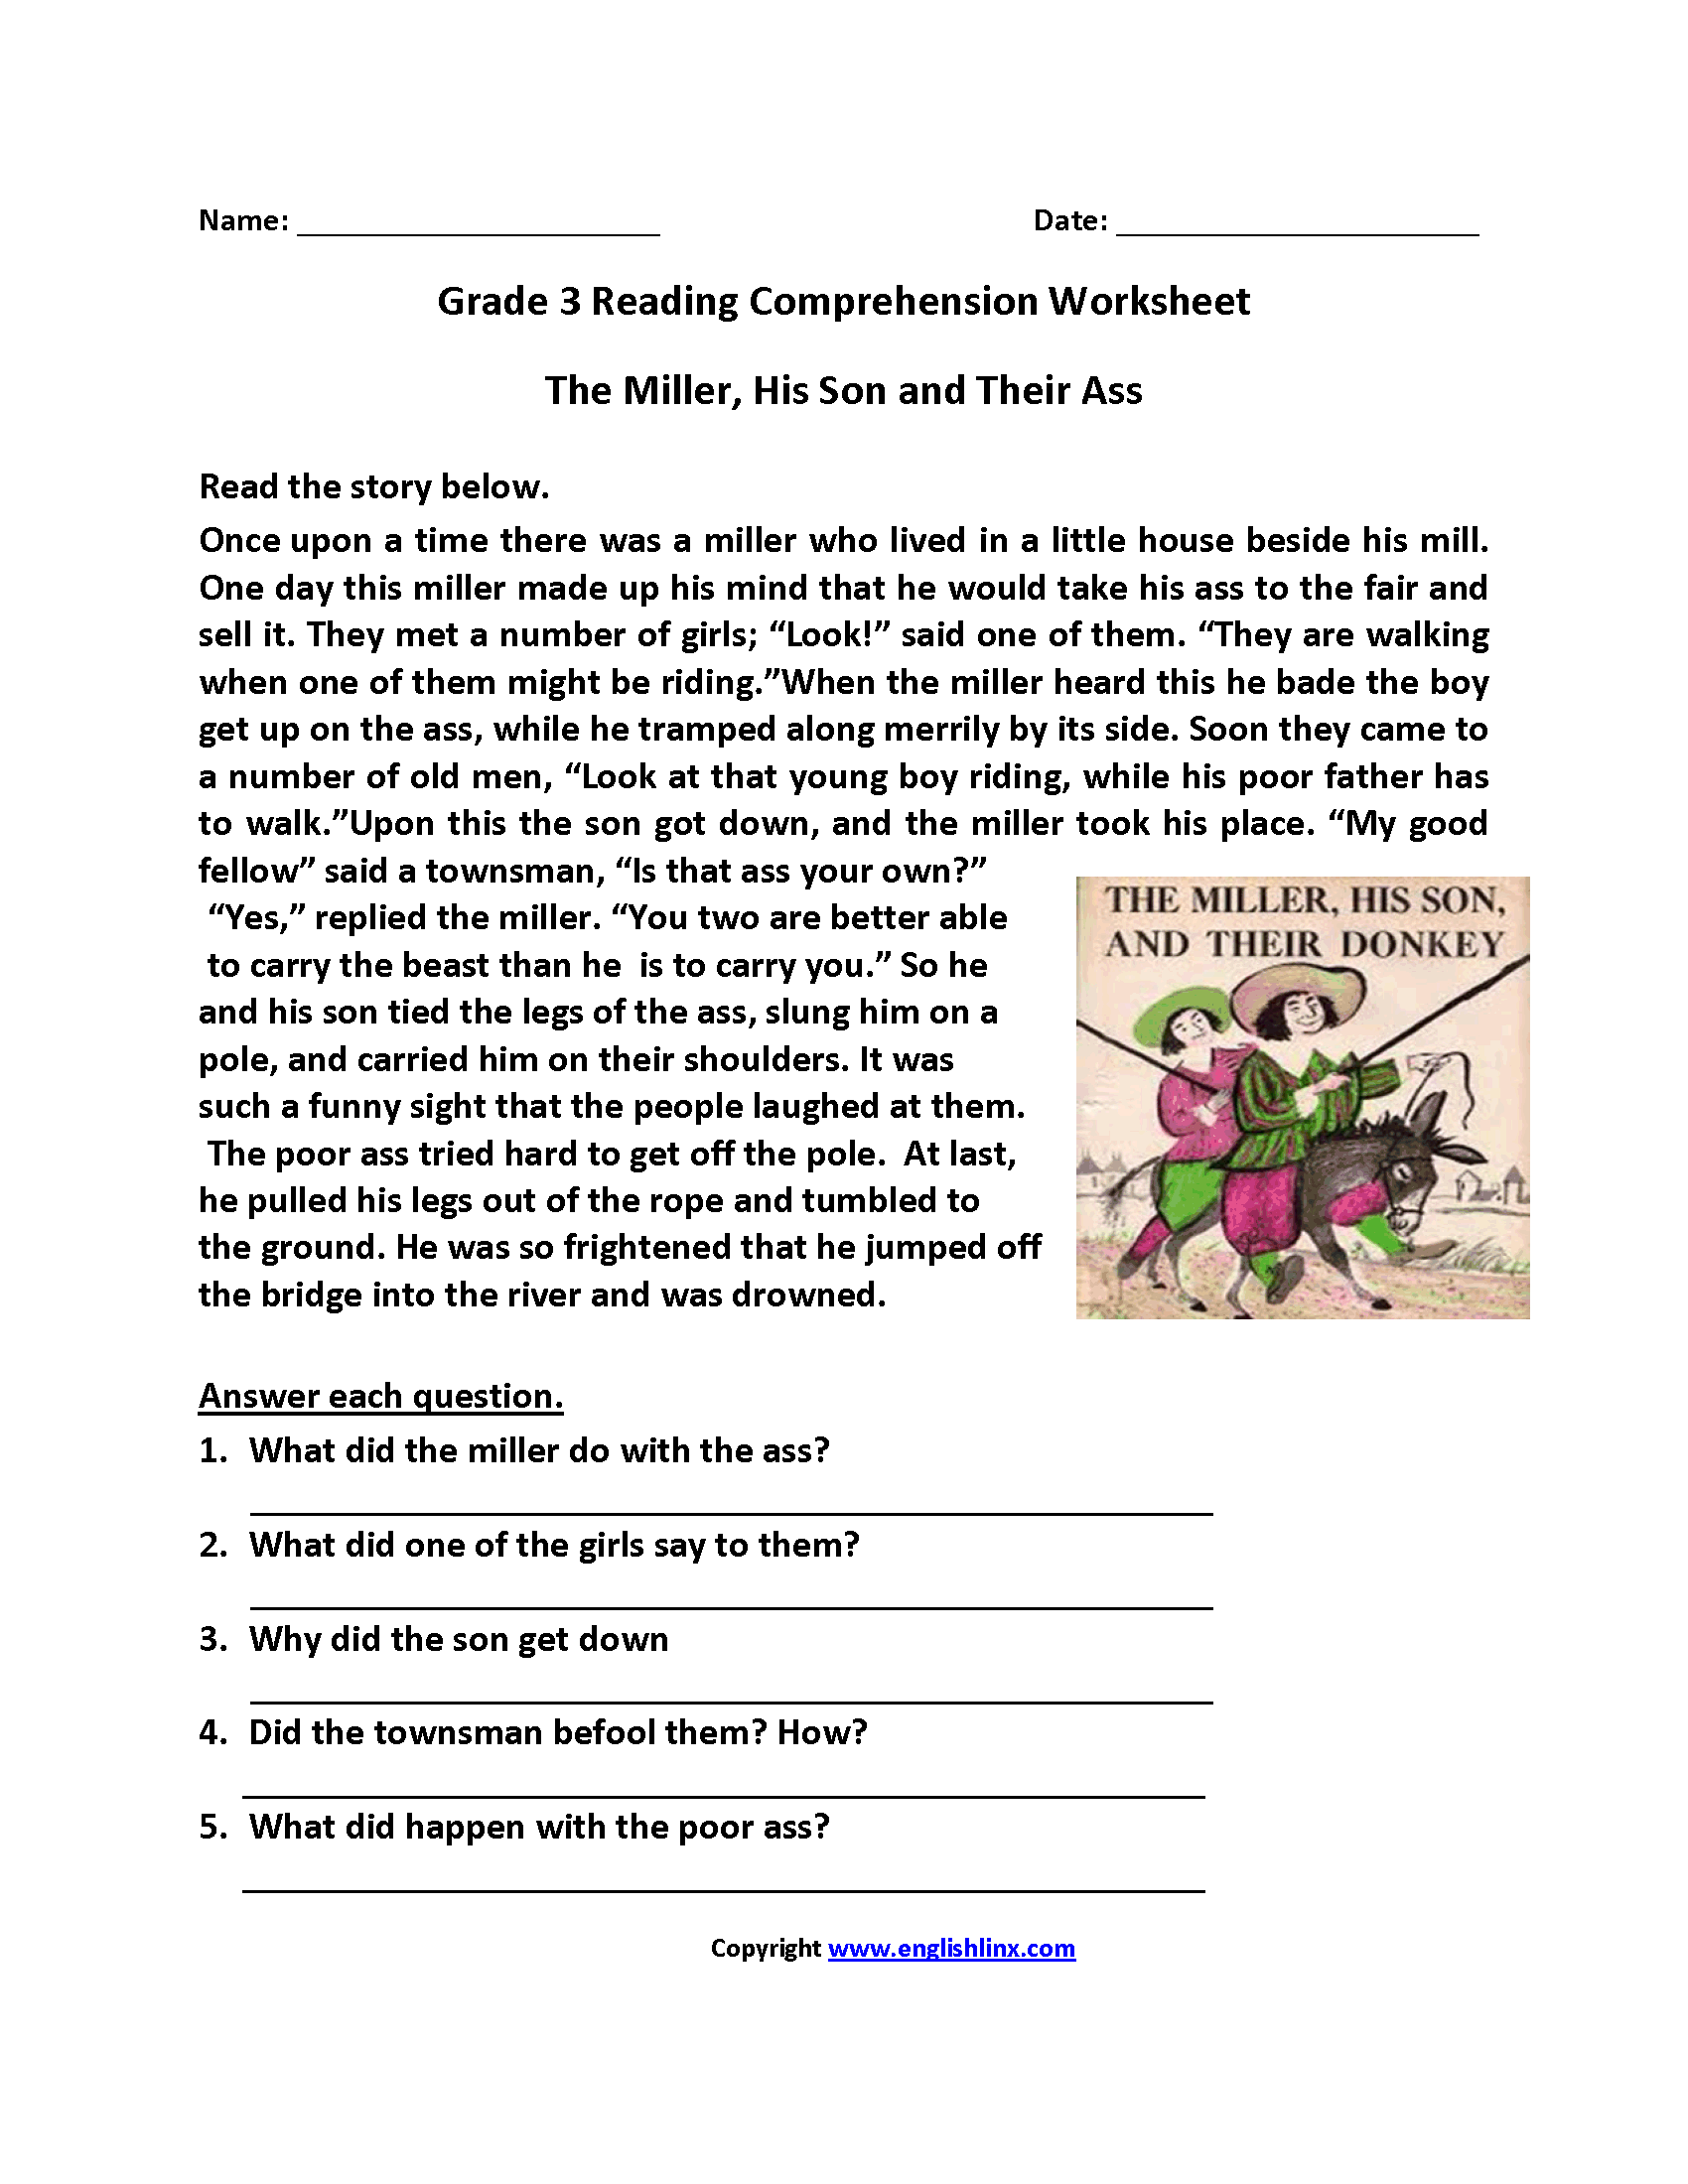 Comprehension Worksheets For Grade 3